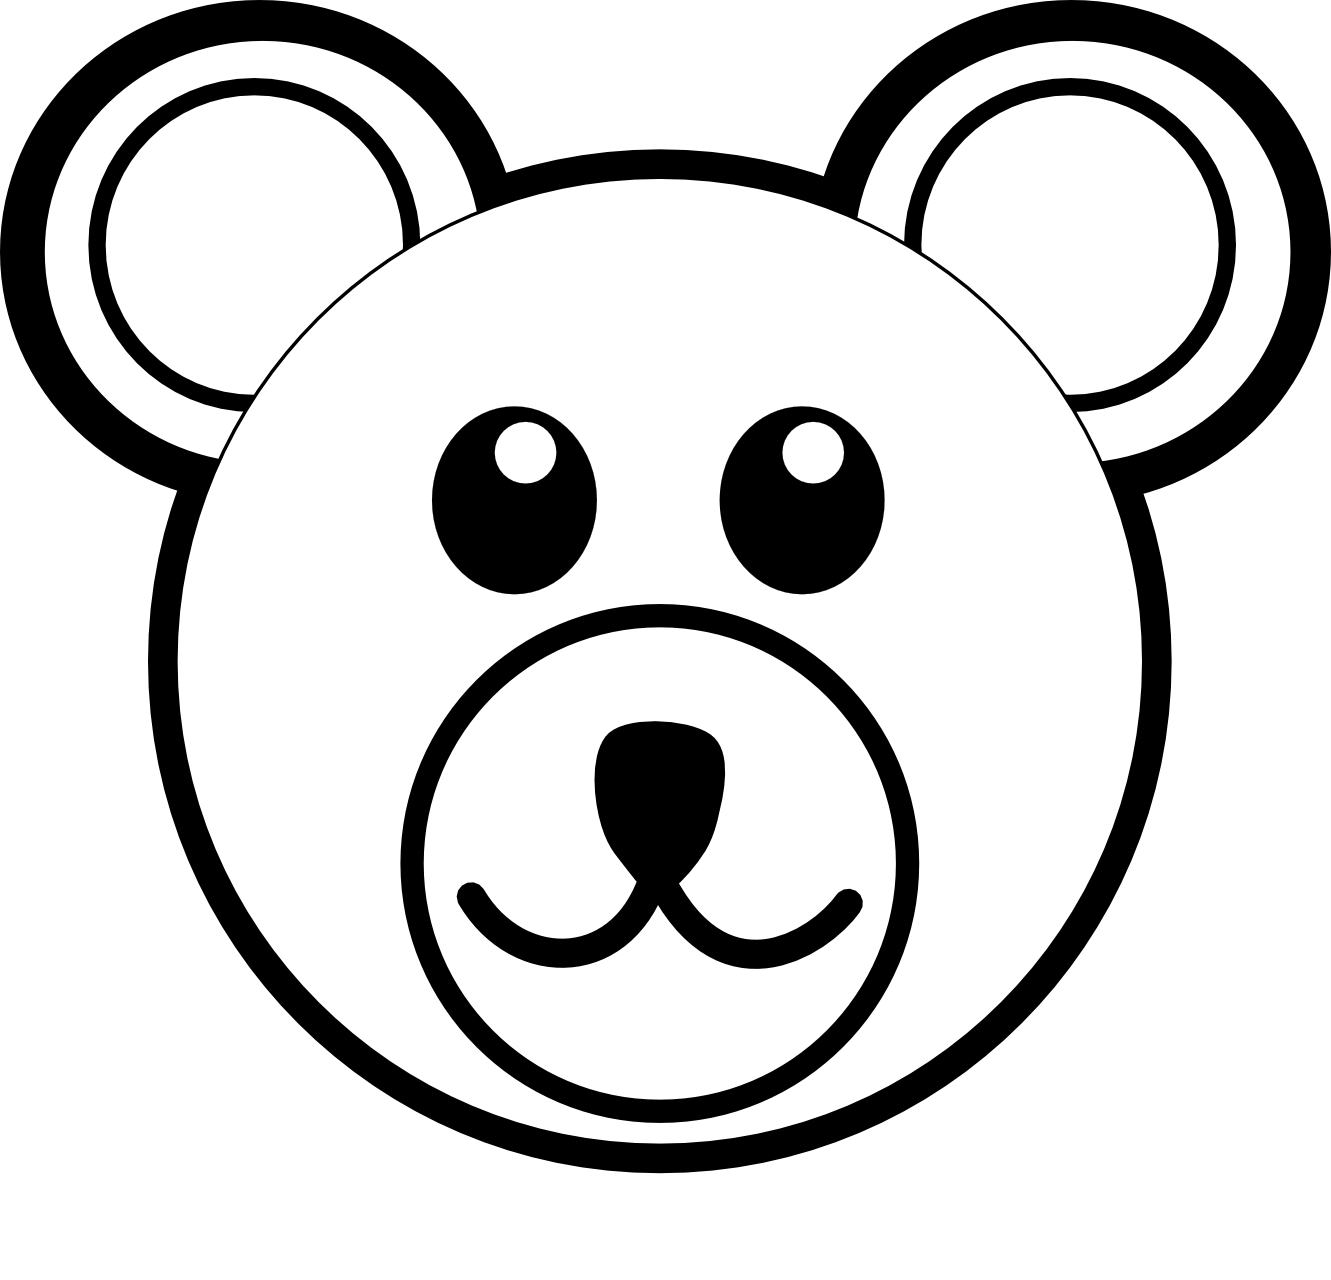 Cute black bear panda. Clipart rose face